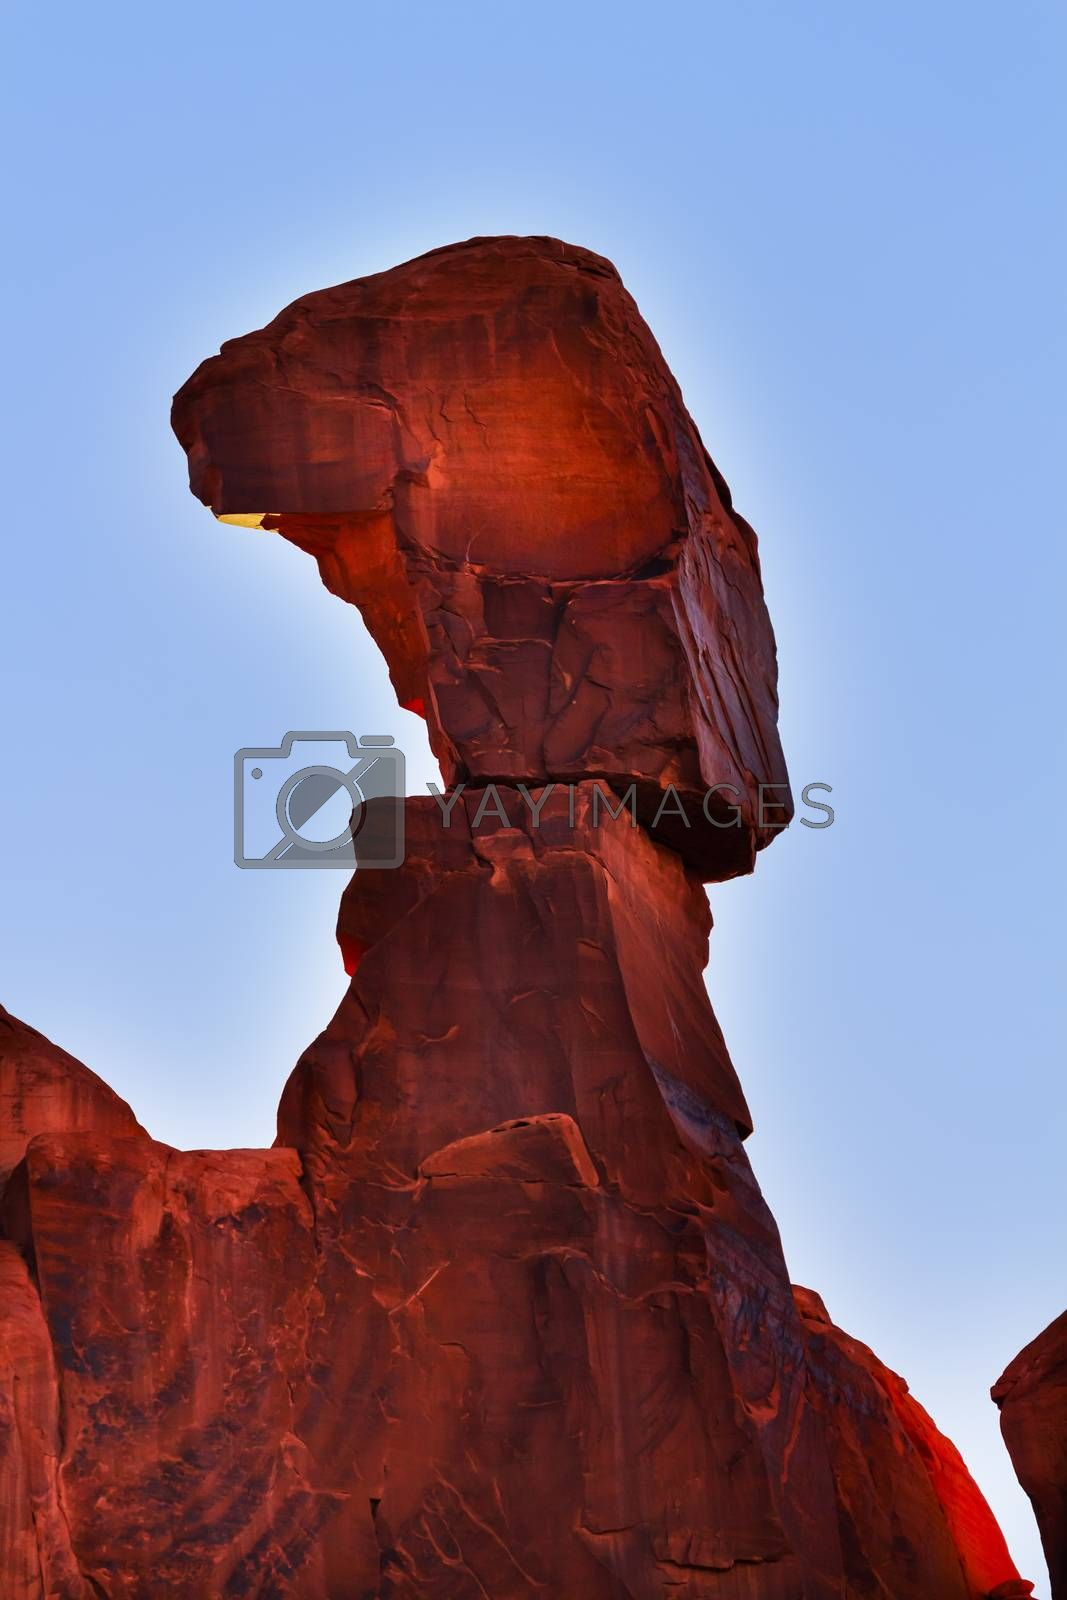 Royalty free image of Nefertiti Rock Park Avenue Arches National Park Moab Utah by bill_perry